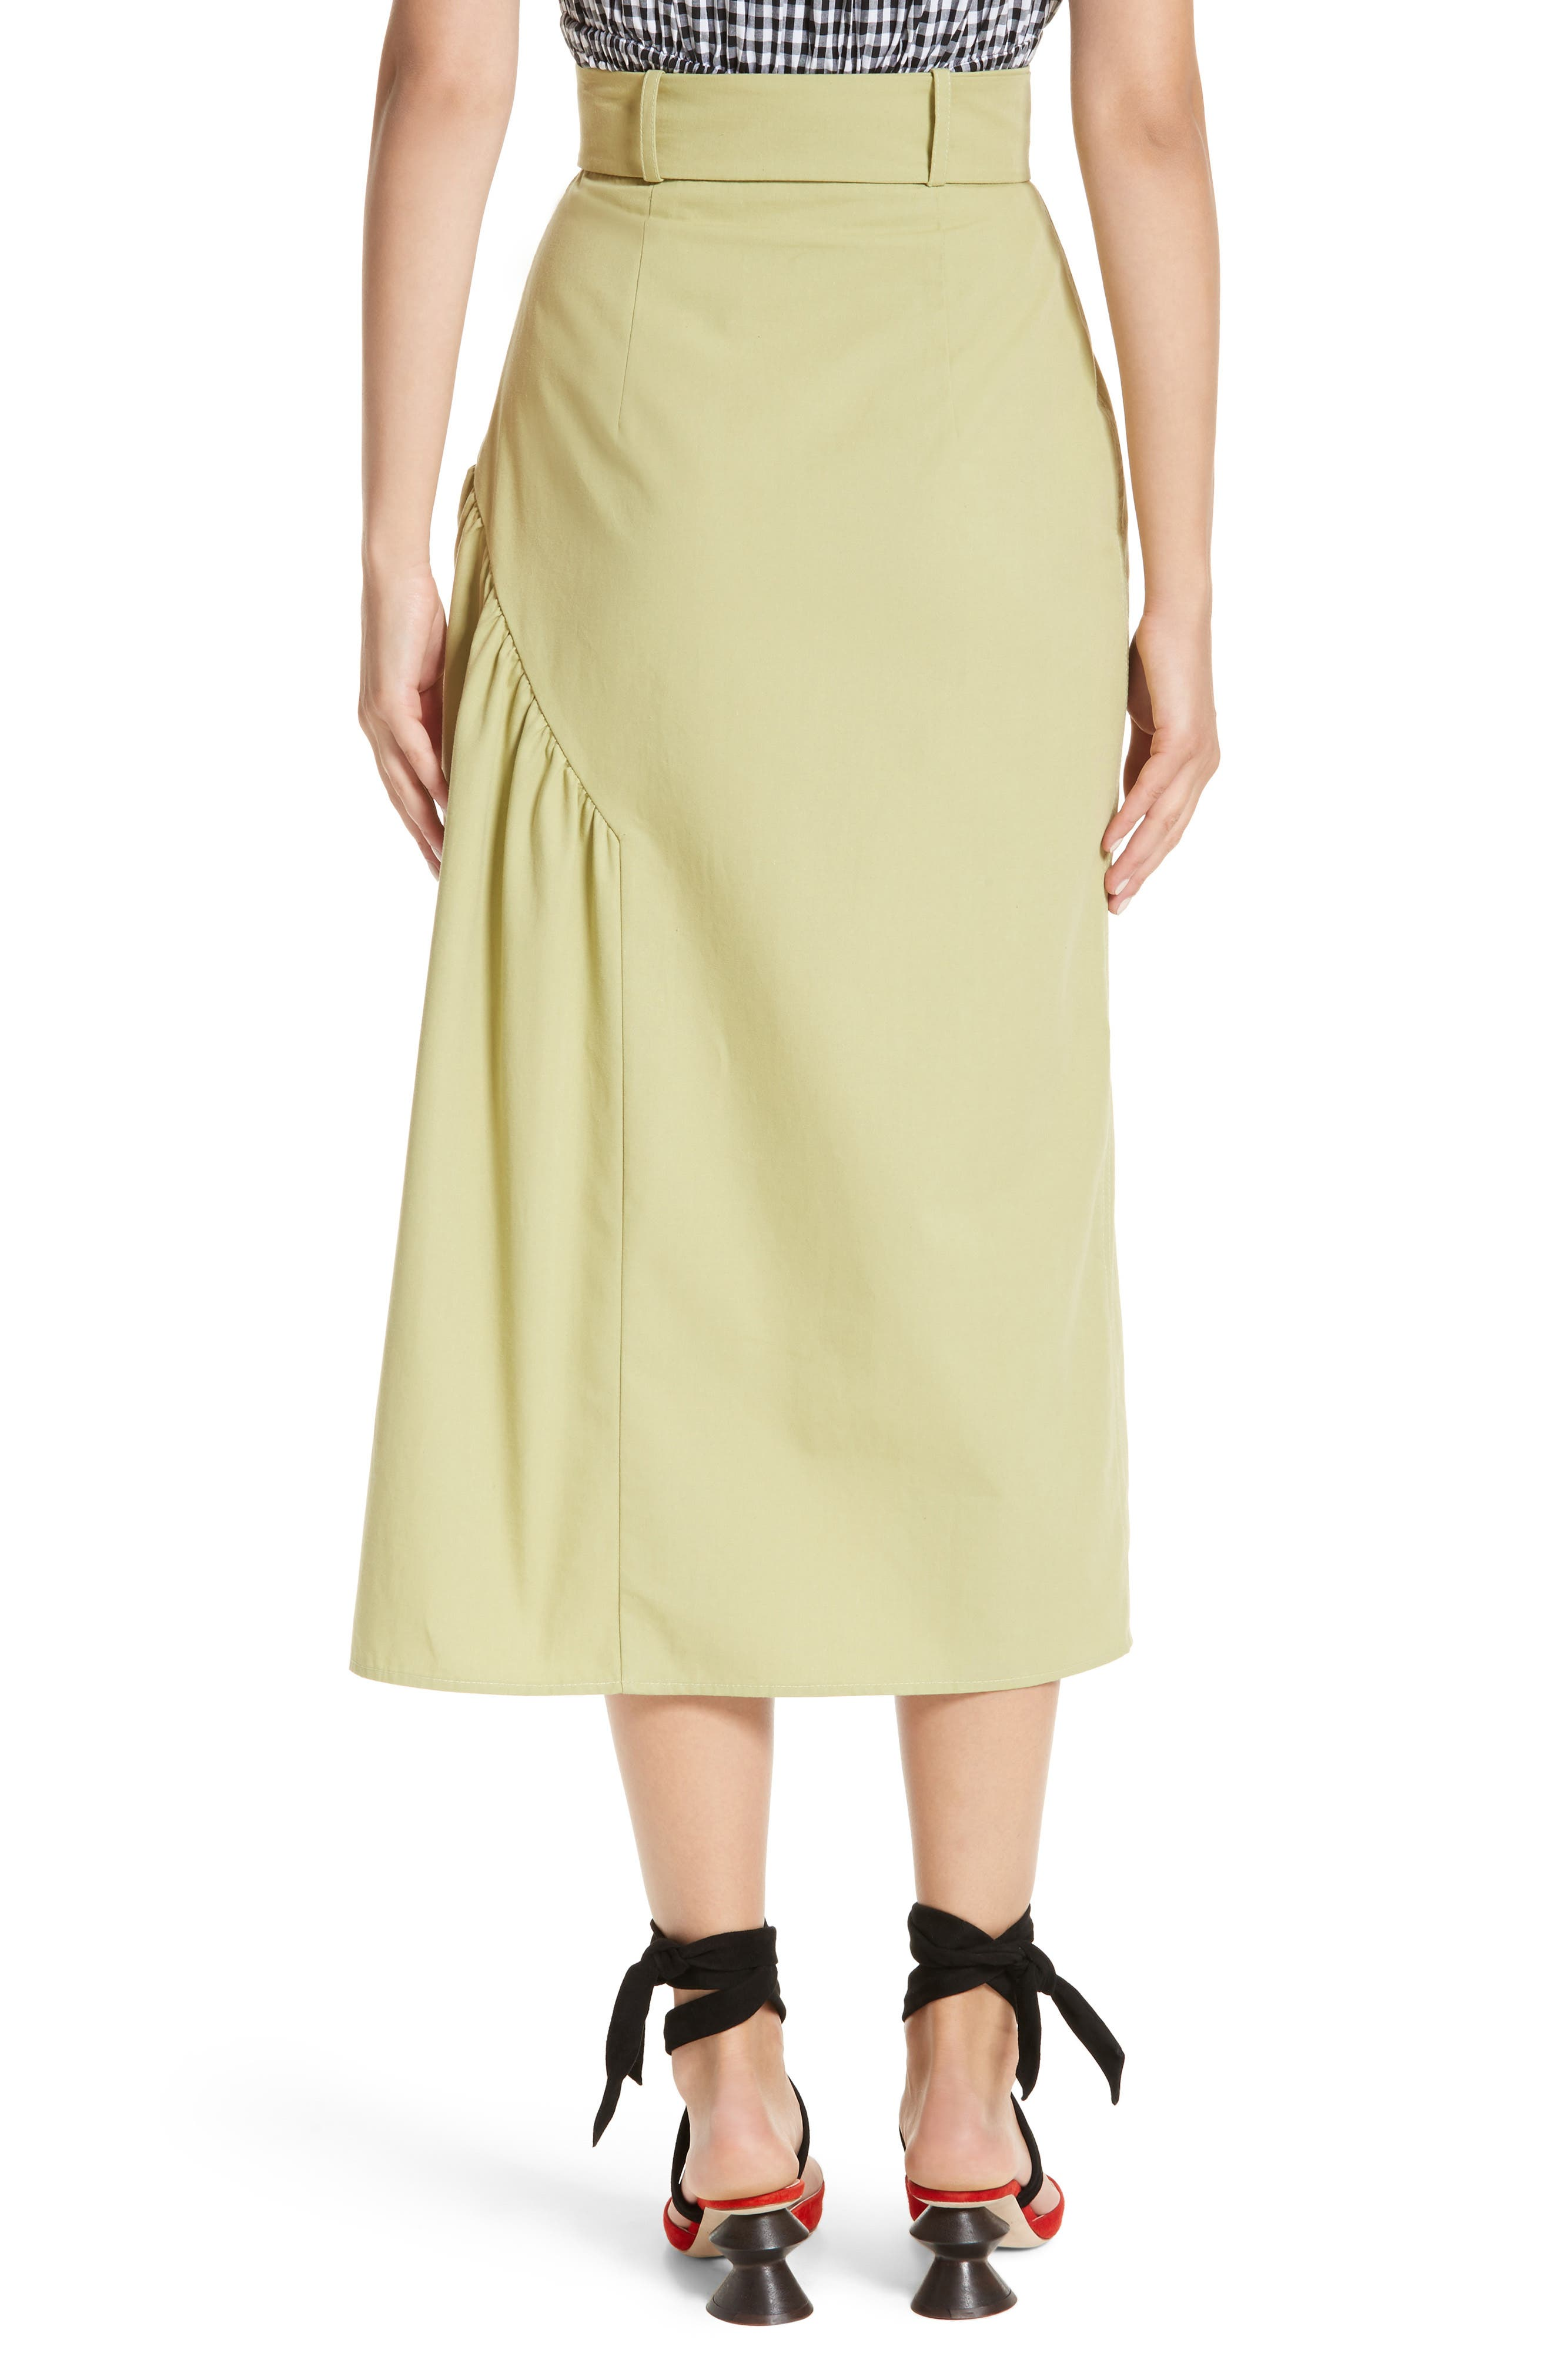 Belted High Waist Ruffle Skirt,                             Alternate thumbnail 2, color,                             Cotton Sage Green